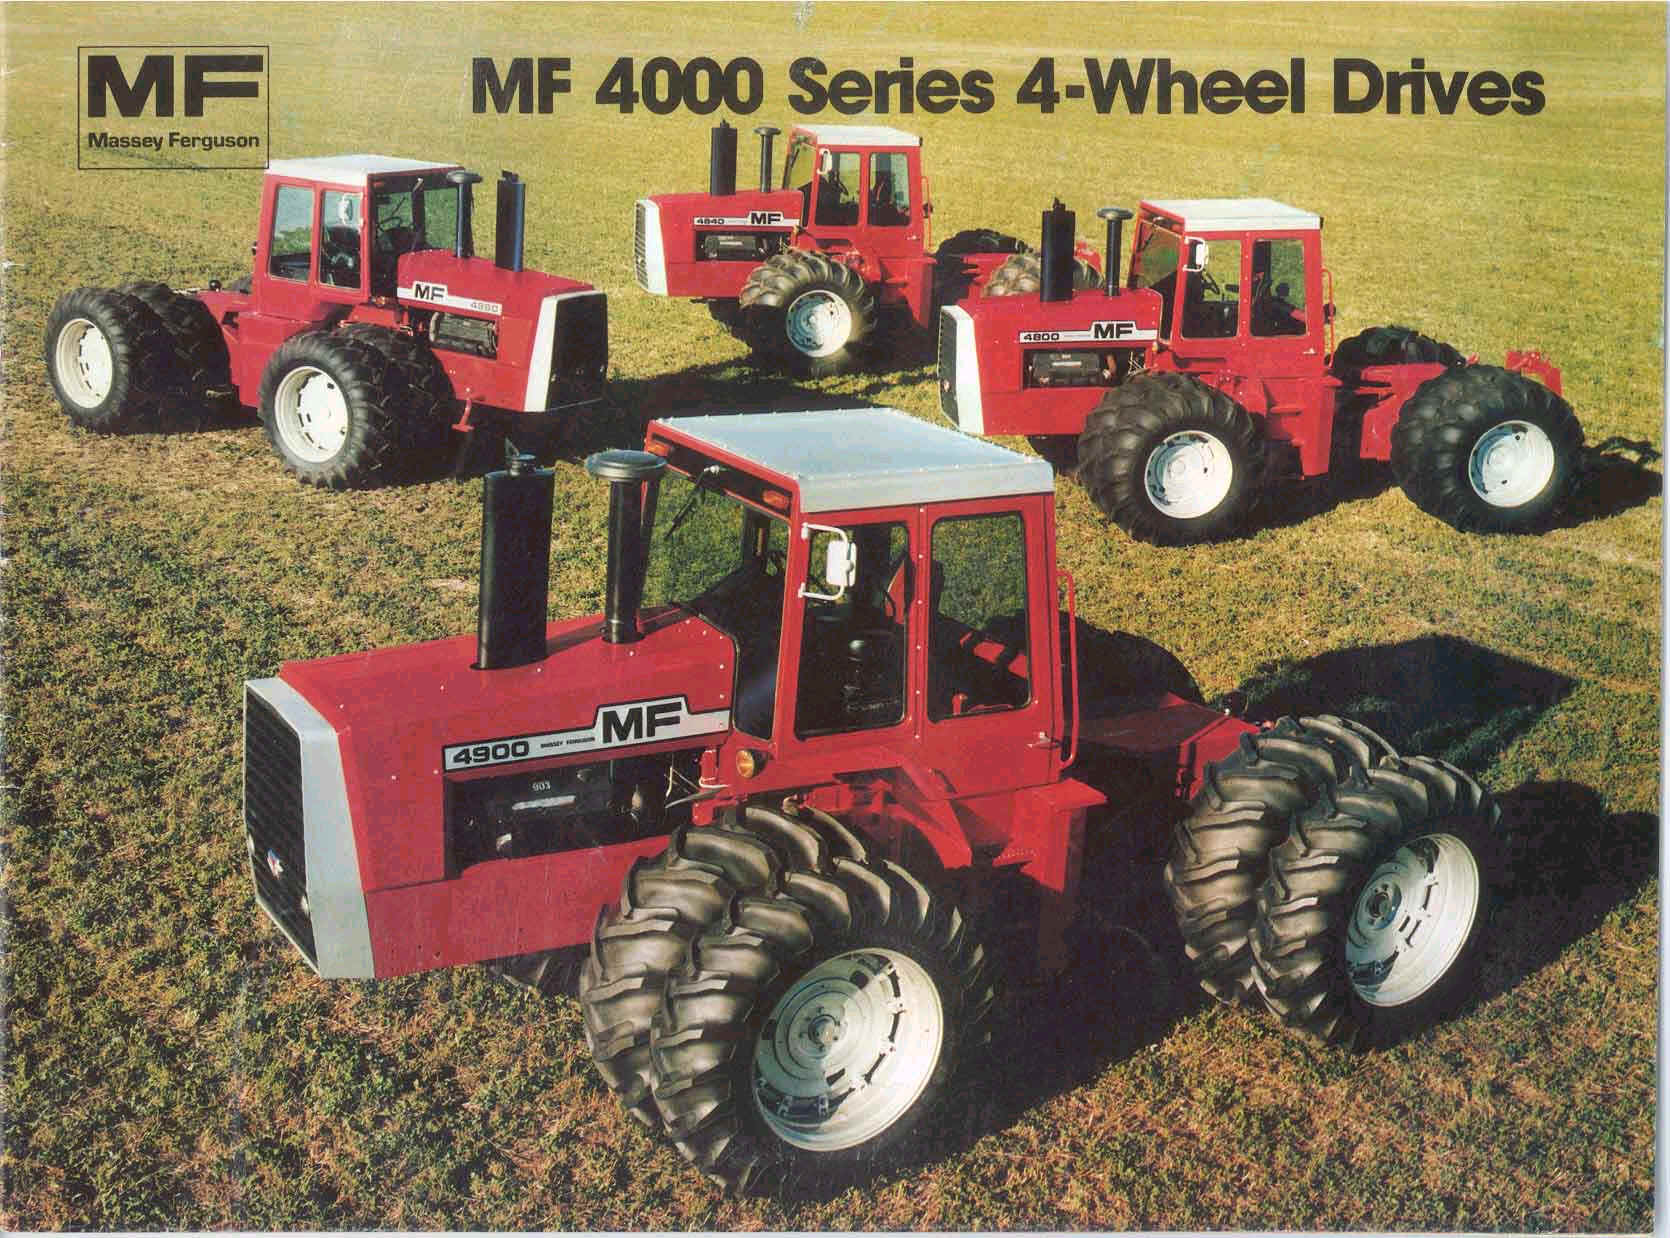 Massey ferguson 4000-series photo - 2